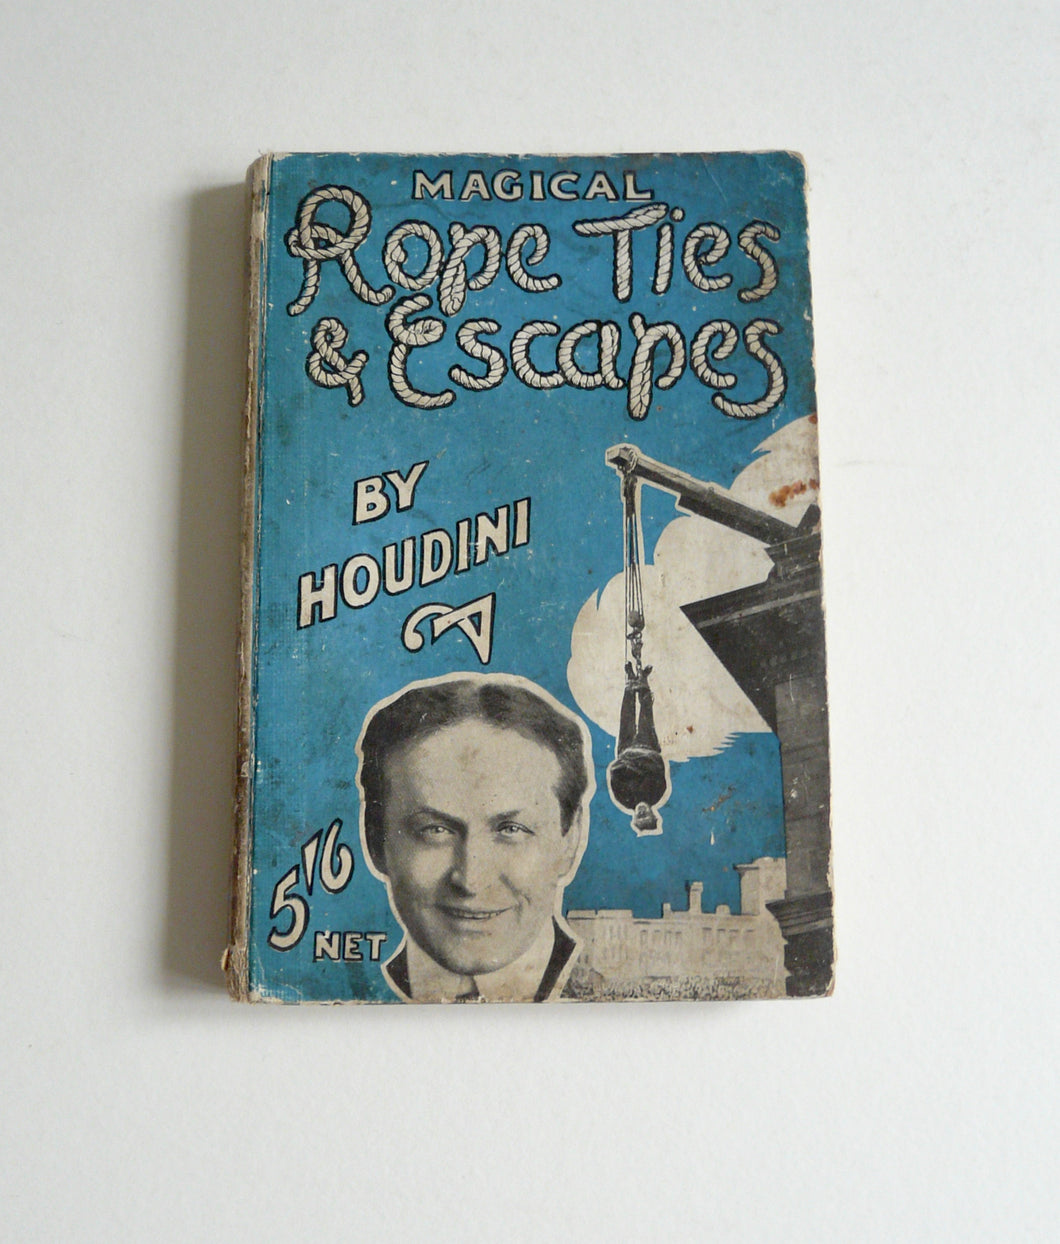 Magical Rope Ties and Escapes by Houdini - Everlasting Editions